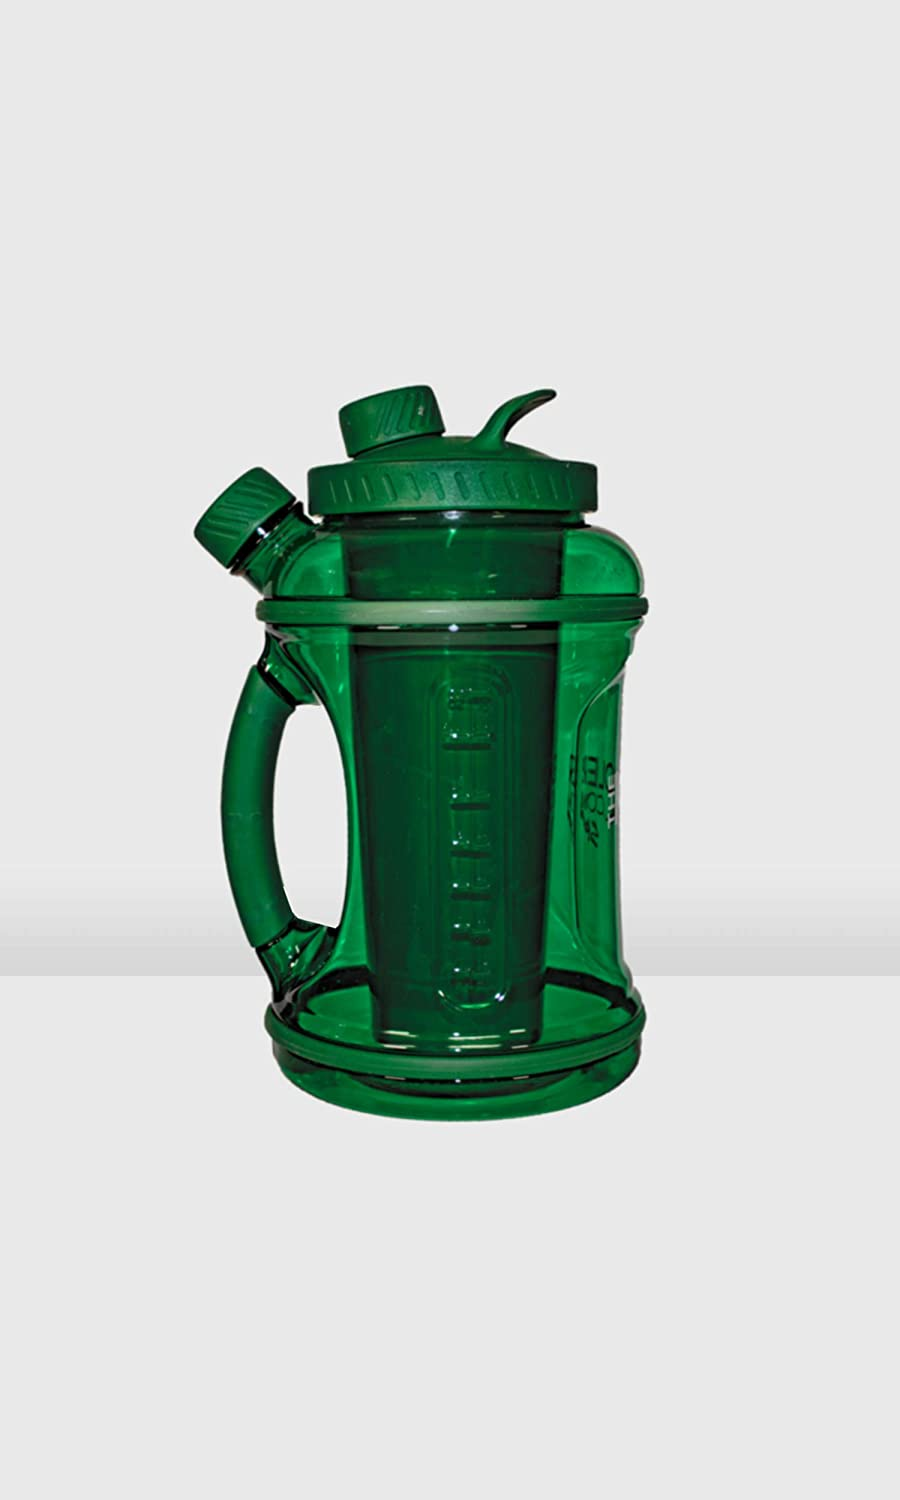 Green Kooler Sport 1//2 Gallon Cooler with Shaker Cup and Removable Protein Powder Cup